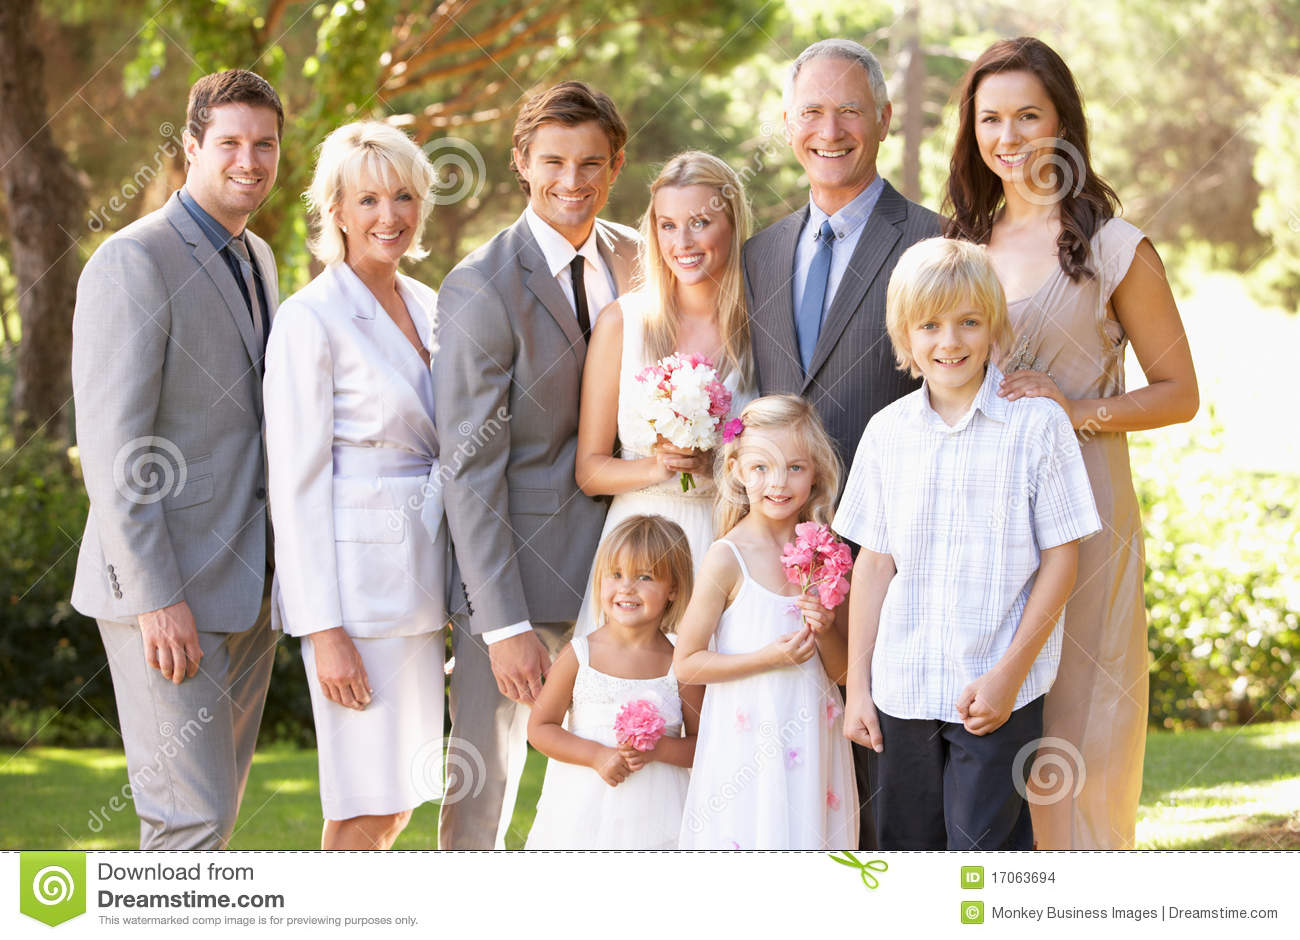 Family Group At Wedding Stock Images - Image: 17063694